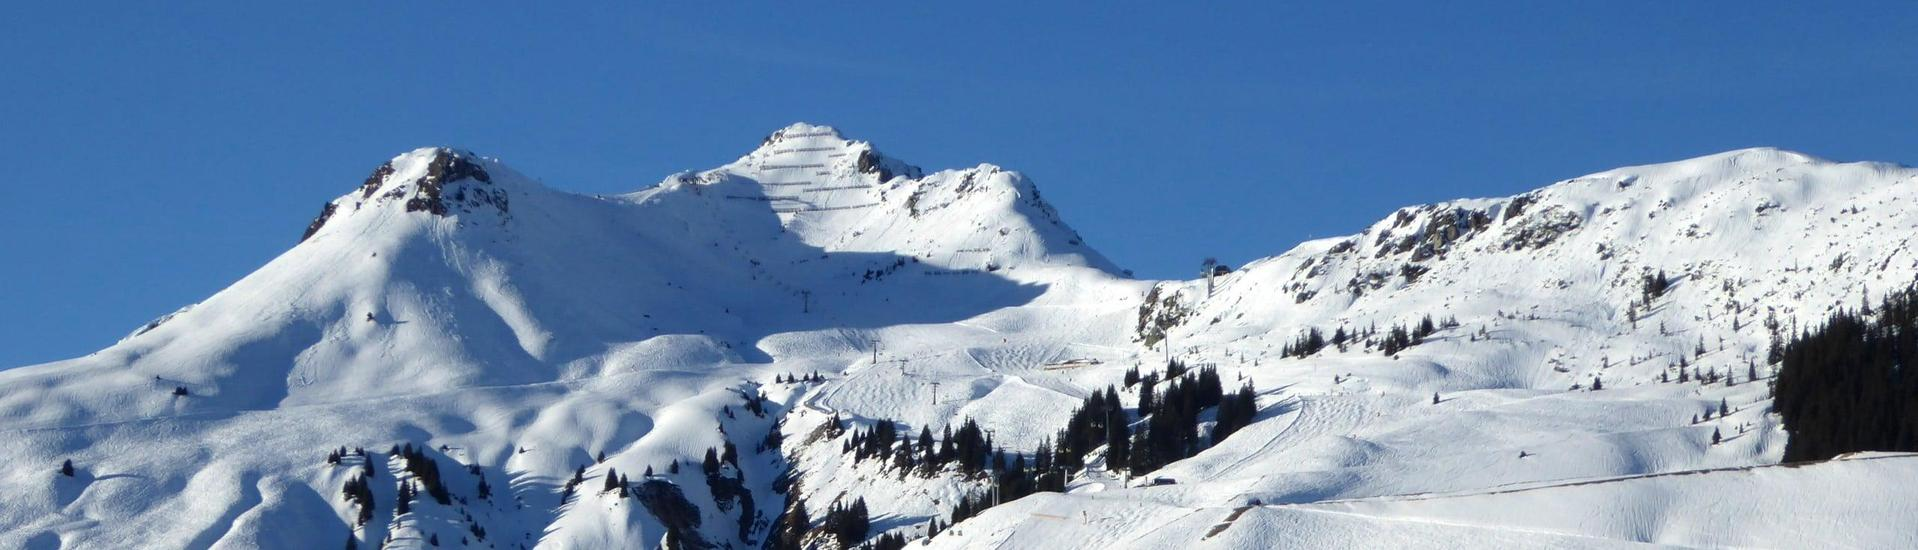 View over the sunny mountain landscape while learning to ski with the ski schools in Fieberbrunn.